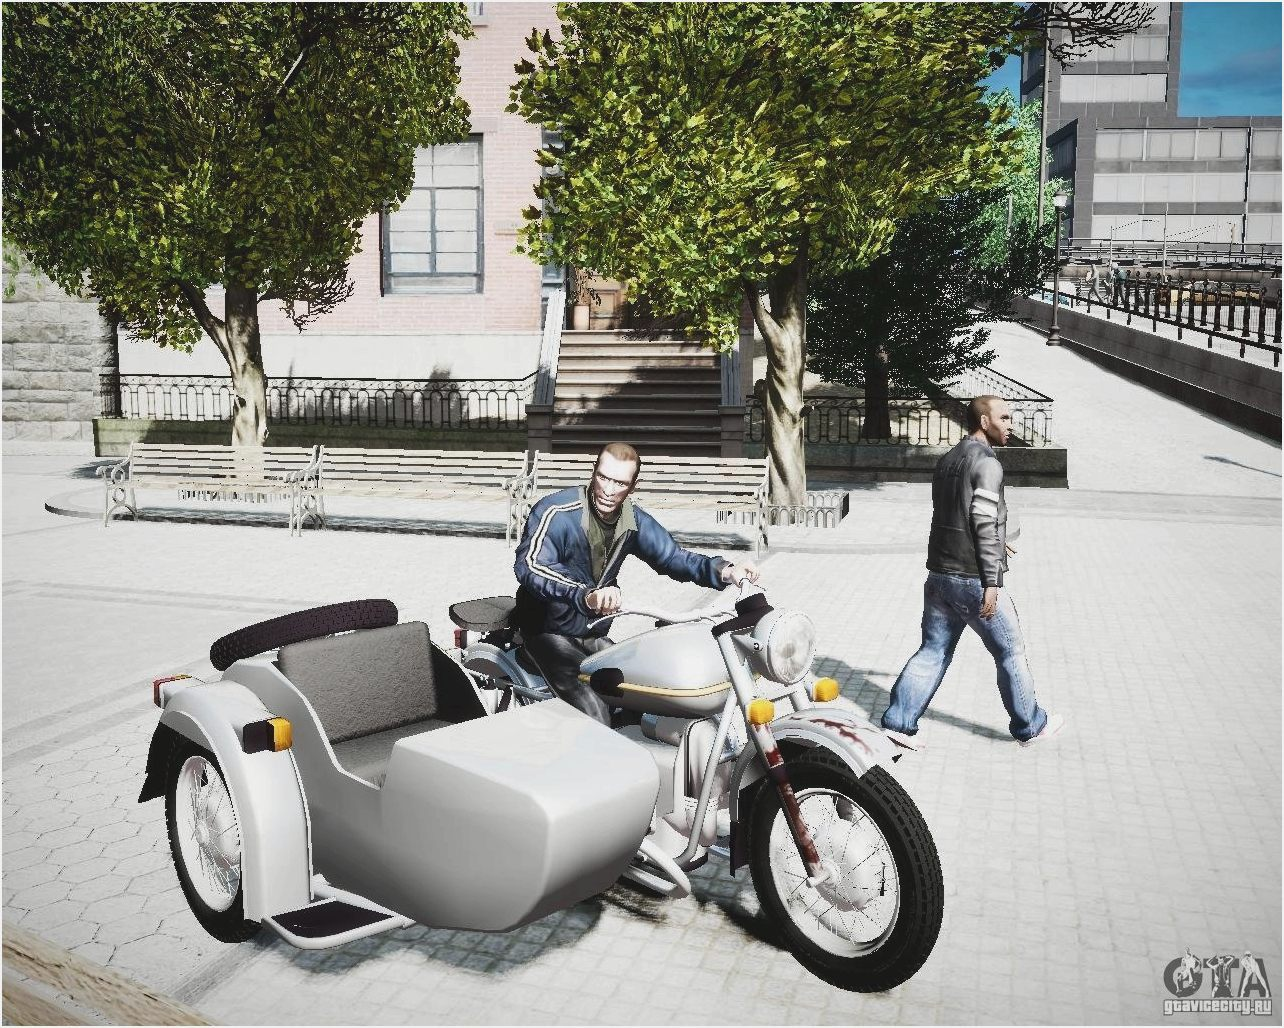 Ural M 66 with sidecar 1974 images #127363